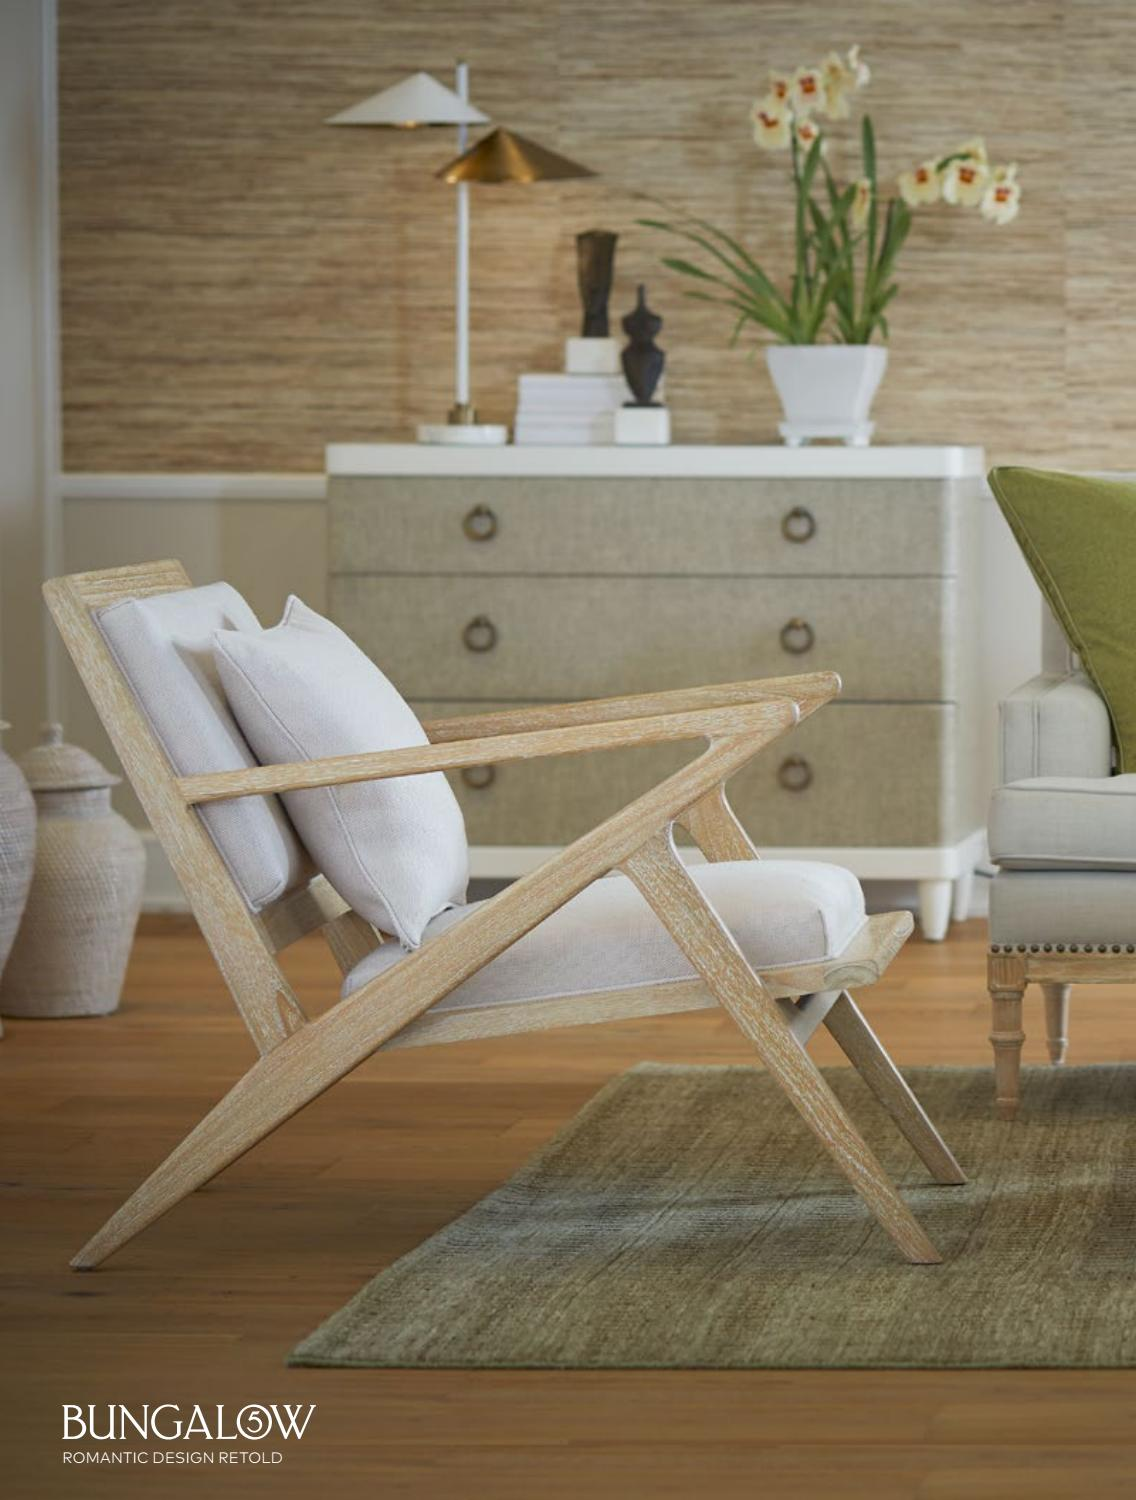 Remarkable 2019 Catalog By Bungalow5Llc Issuu Unemploymentrelief Wooden Chair Designs For Living Room Unemploymentrelieforg